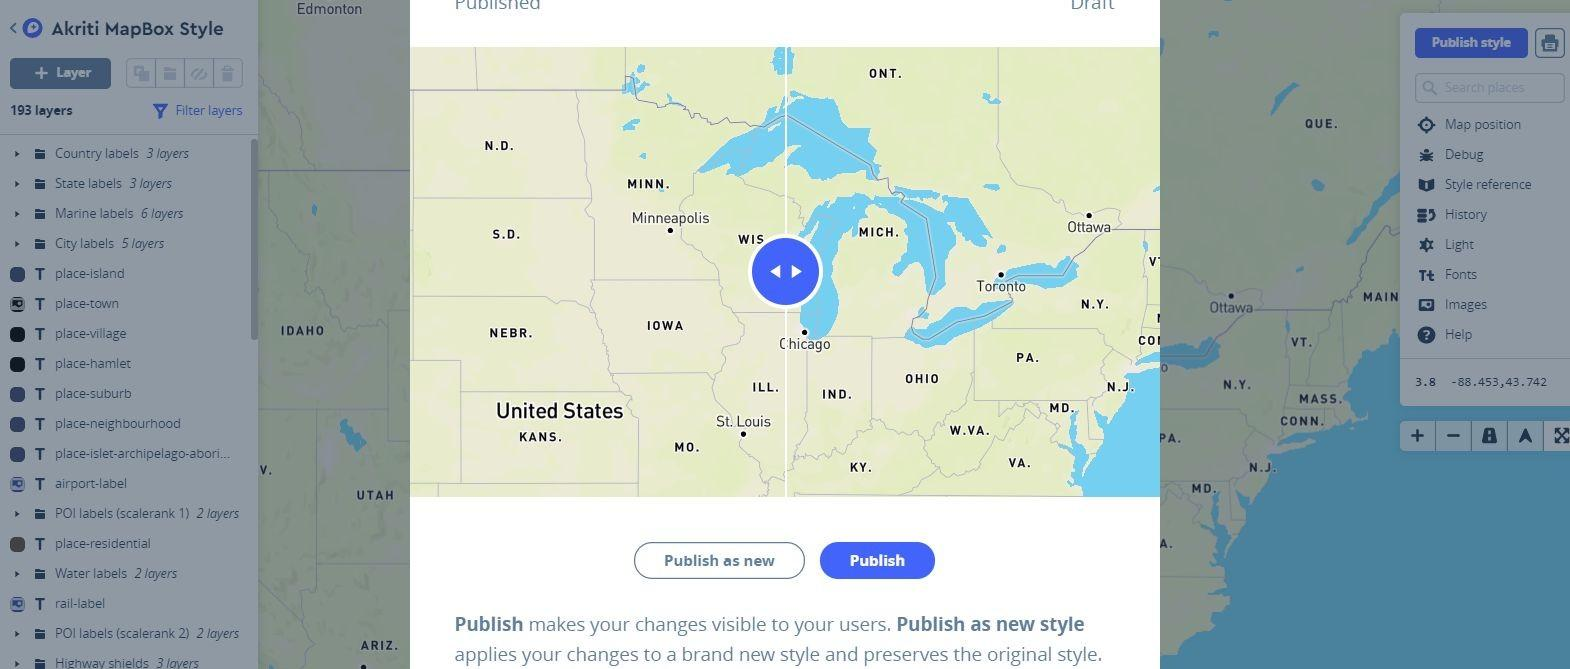 Tableau Integration With Custom Map Styles from Mapbox 33